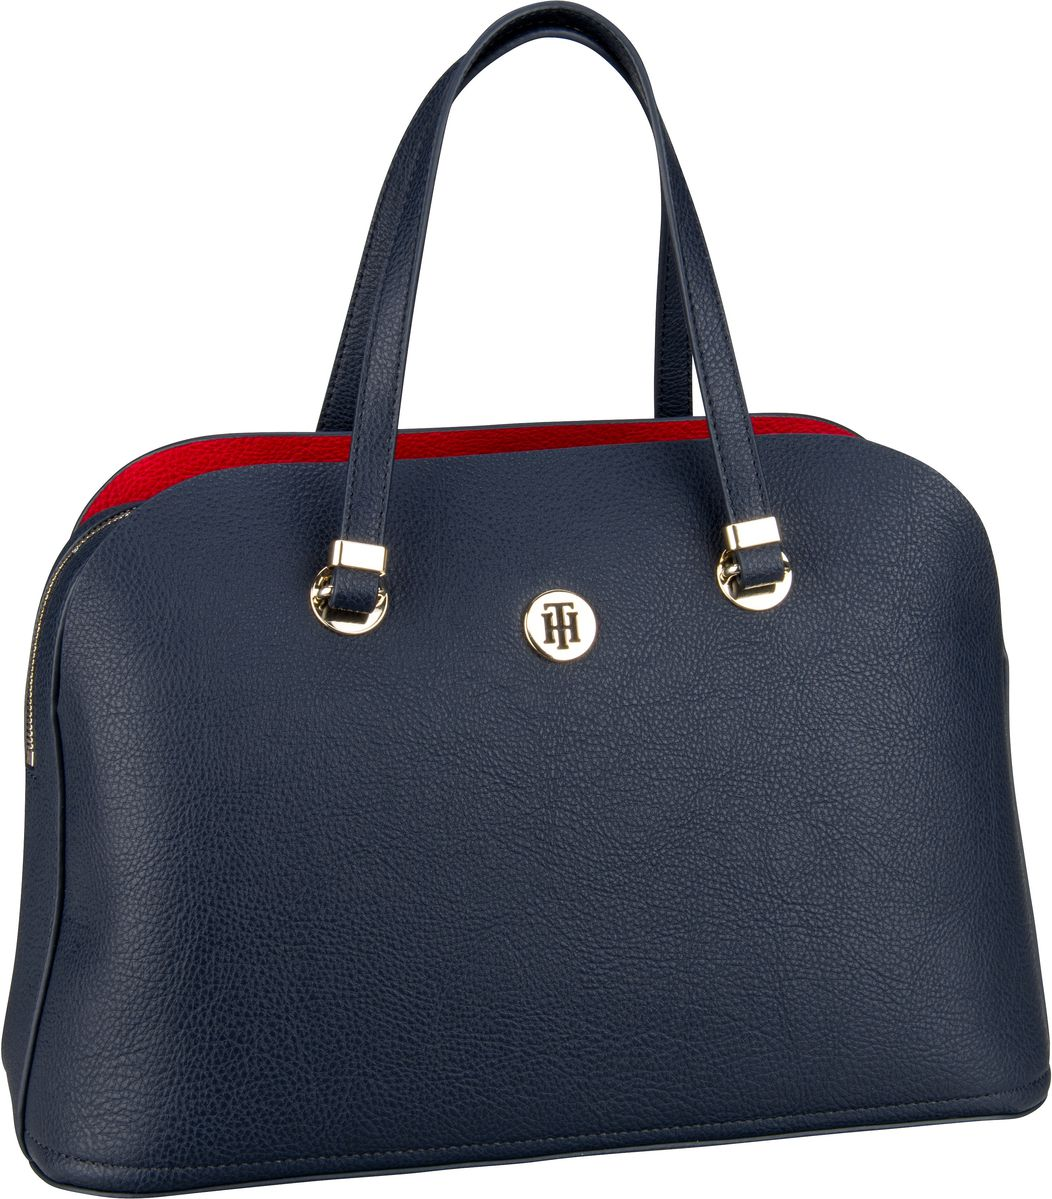 Handtasche TH Core Satchel 6444 Corporate (innen: Rot)